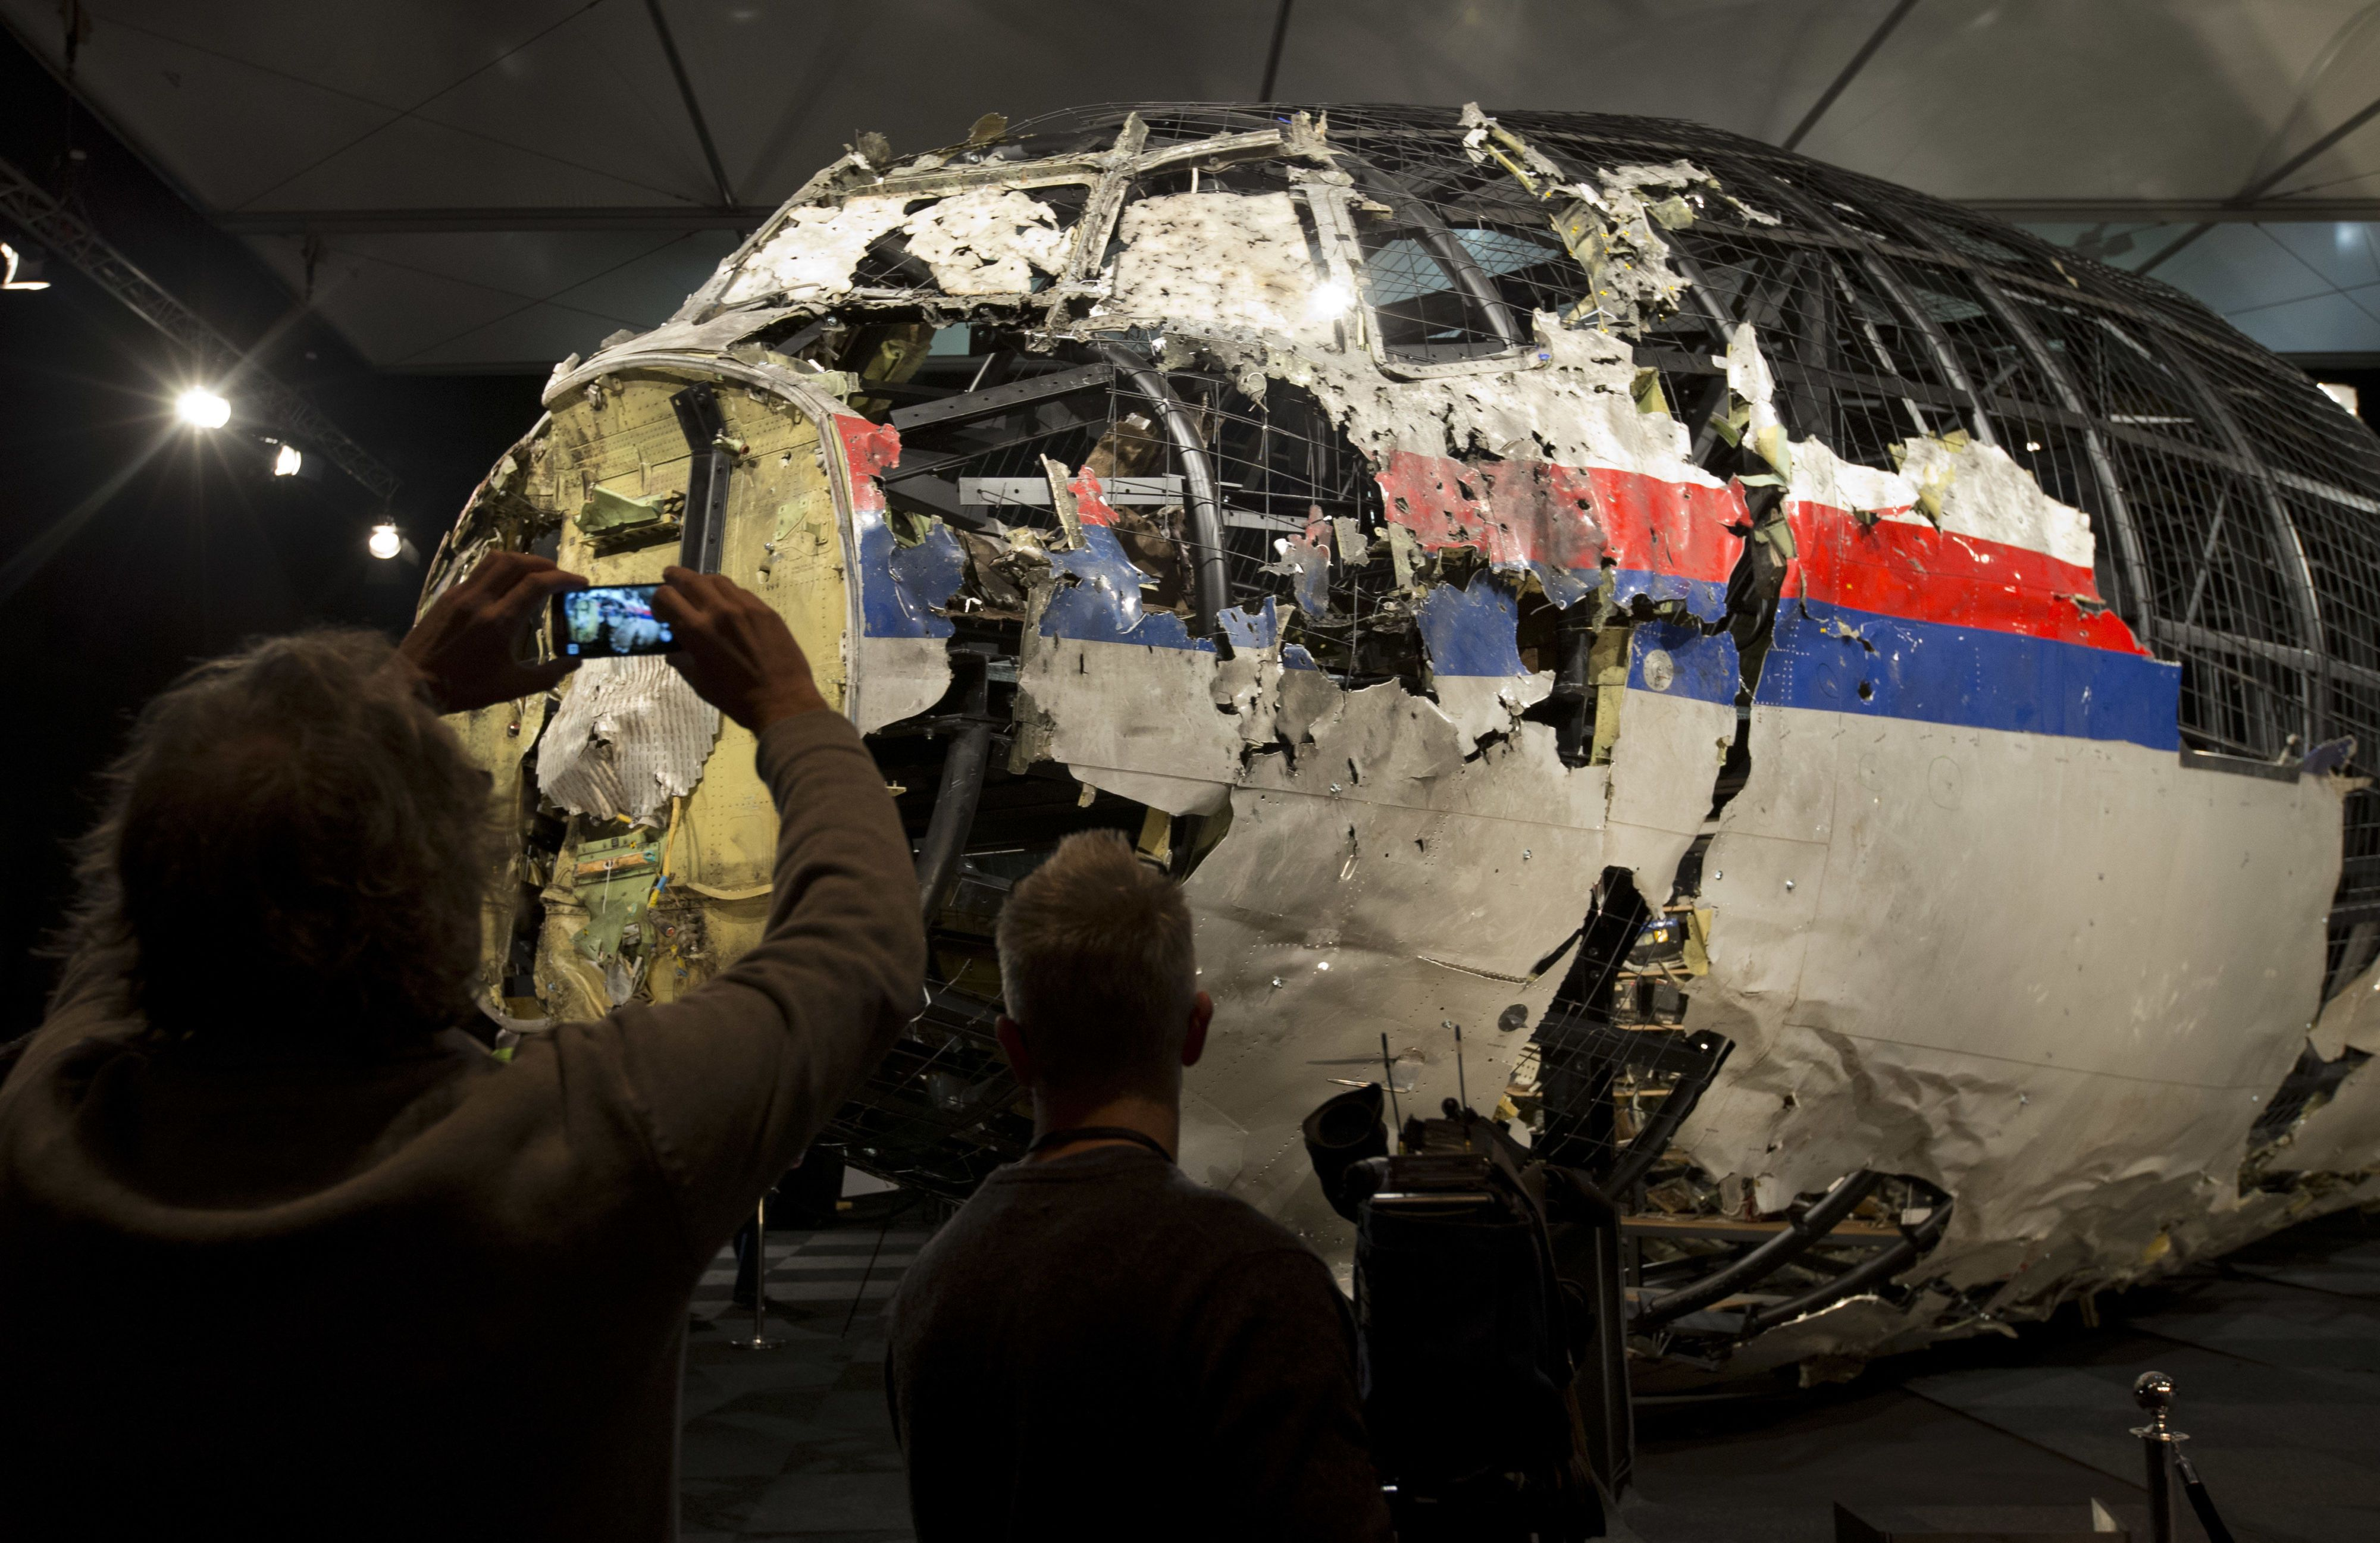 Russia Provided the Missile That Shot Down Malaysia Airlines Flight 17—Investigators